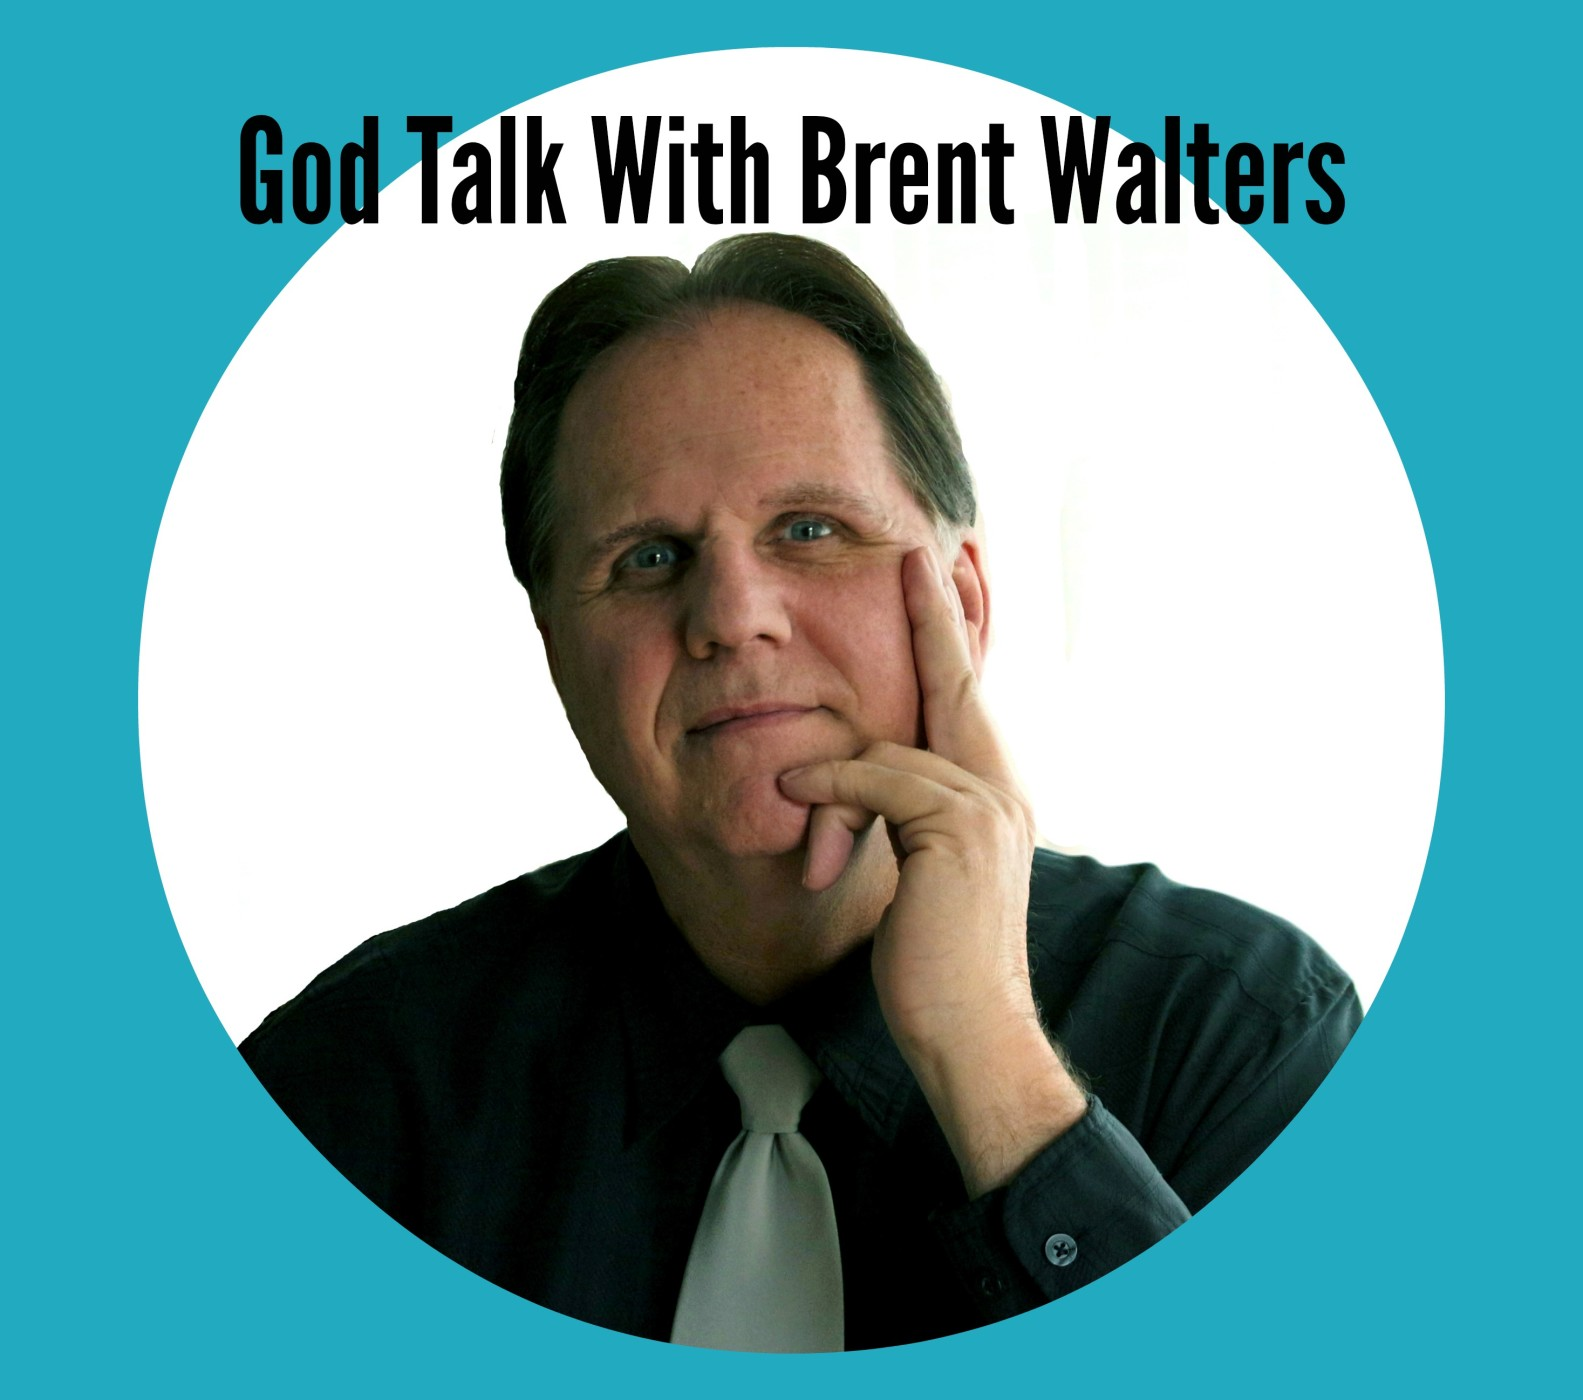 God Talk with Brent Walters